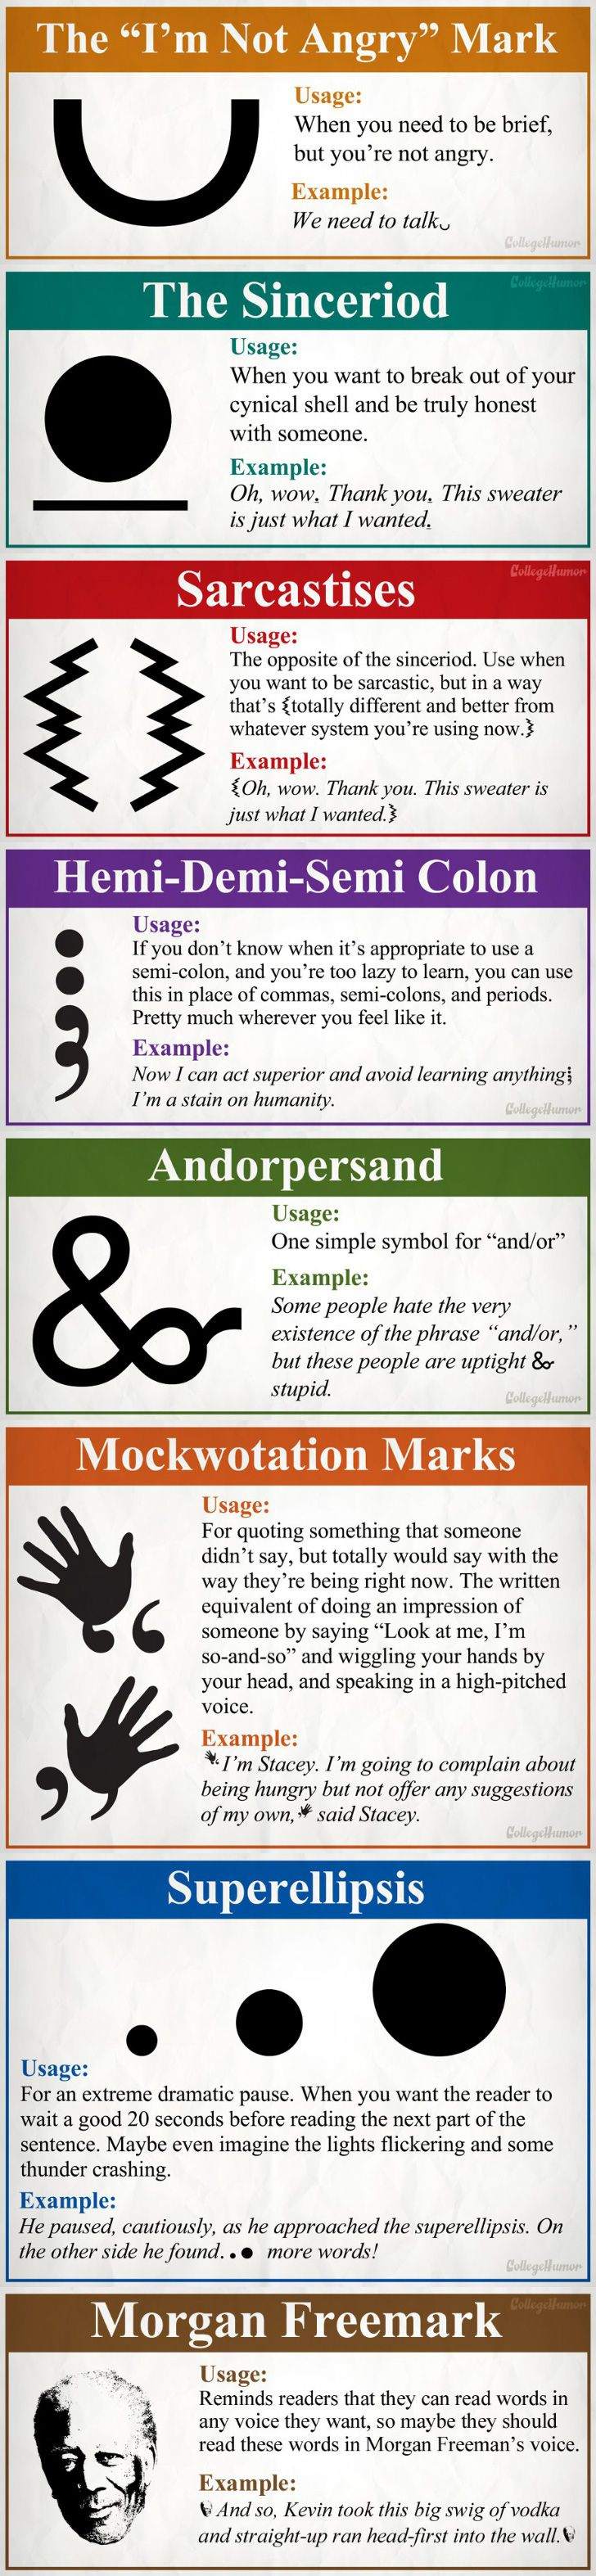 8 new and necessary punctuation marks. I LOVE these!